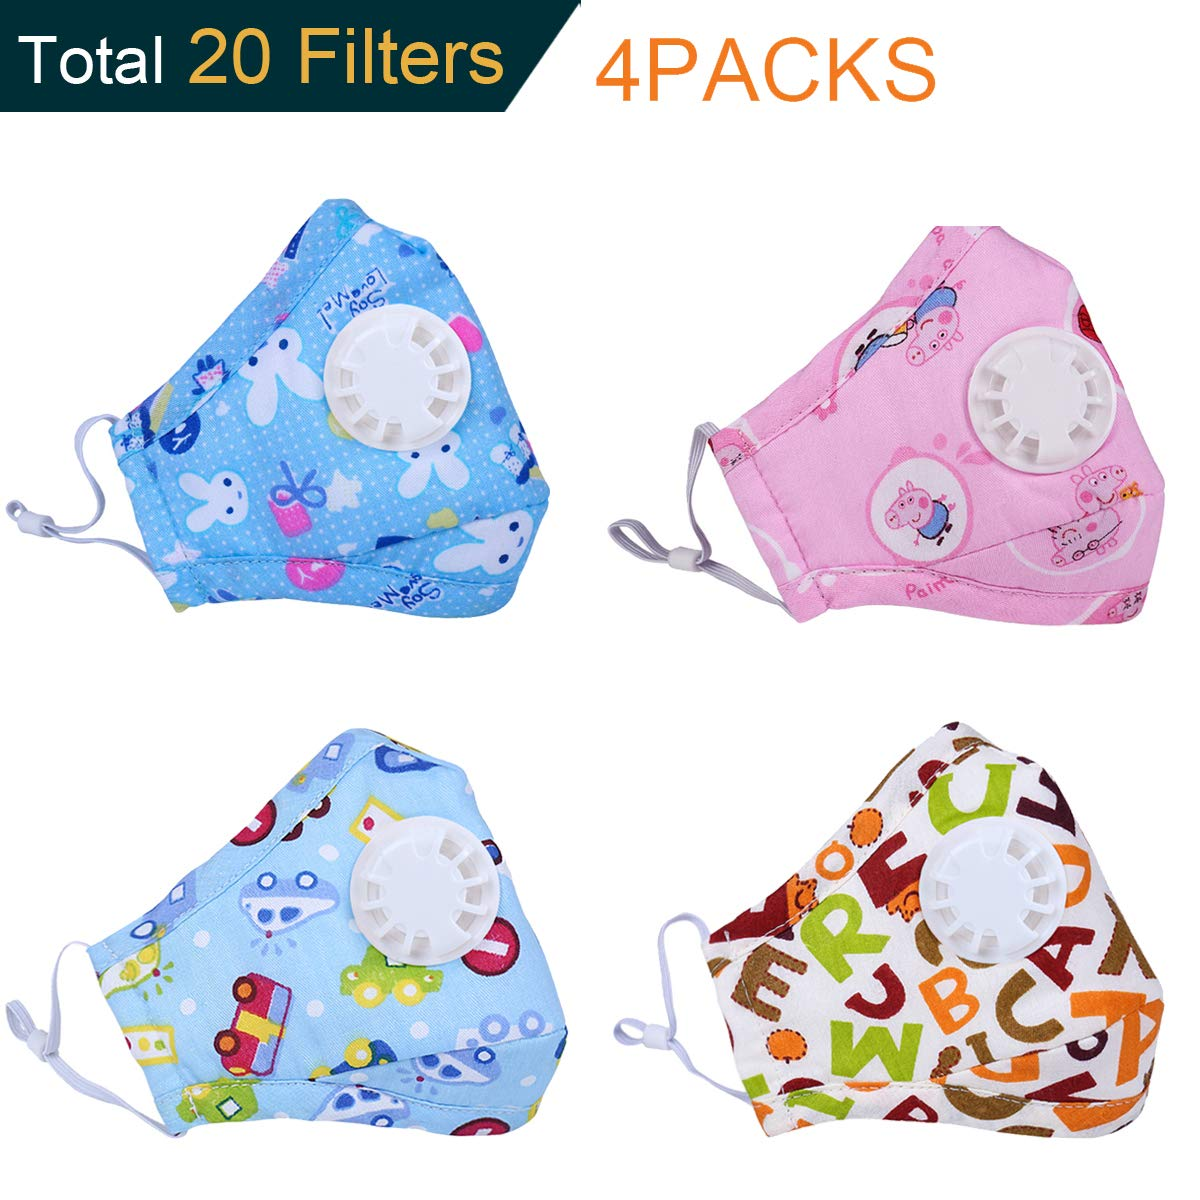 Dodoshop 4Pack Kids Dust Mask with Valve Replaceable Filter Cute Cartoon Cotton Allergy Mouth Mask(Each Mask with 2 Filters)